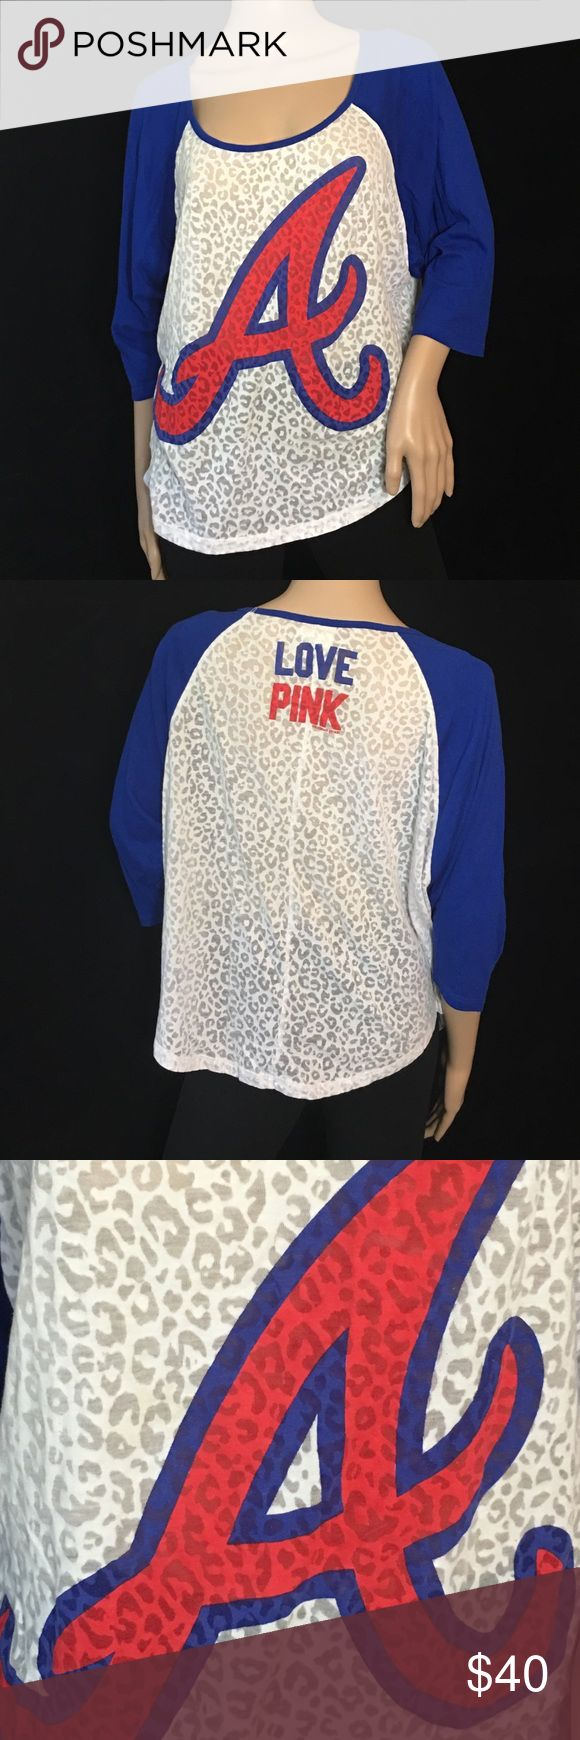 VS PINK - Atlanta Braves Burnout Jersey Victoria's Secret PINK • Atlanta Braves burnout 3/4 sleeve tee • Still like new and vibrant colors • Perfect Condition • Sz M PINK Victoria's Secret Tops Tees - Long Sleeve